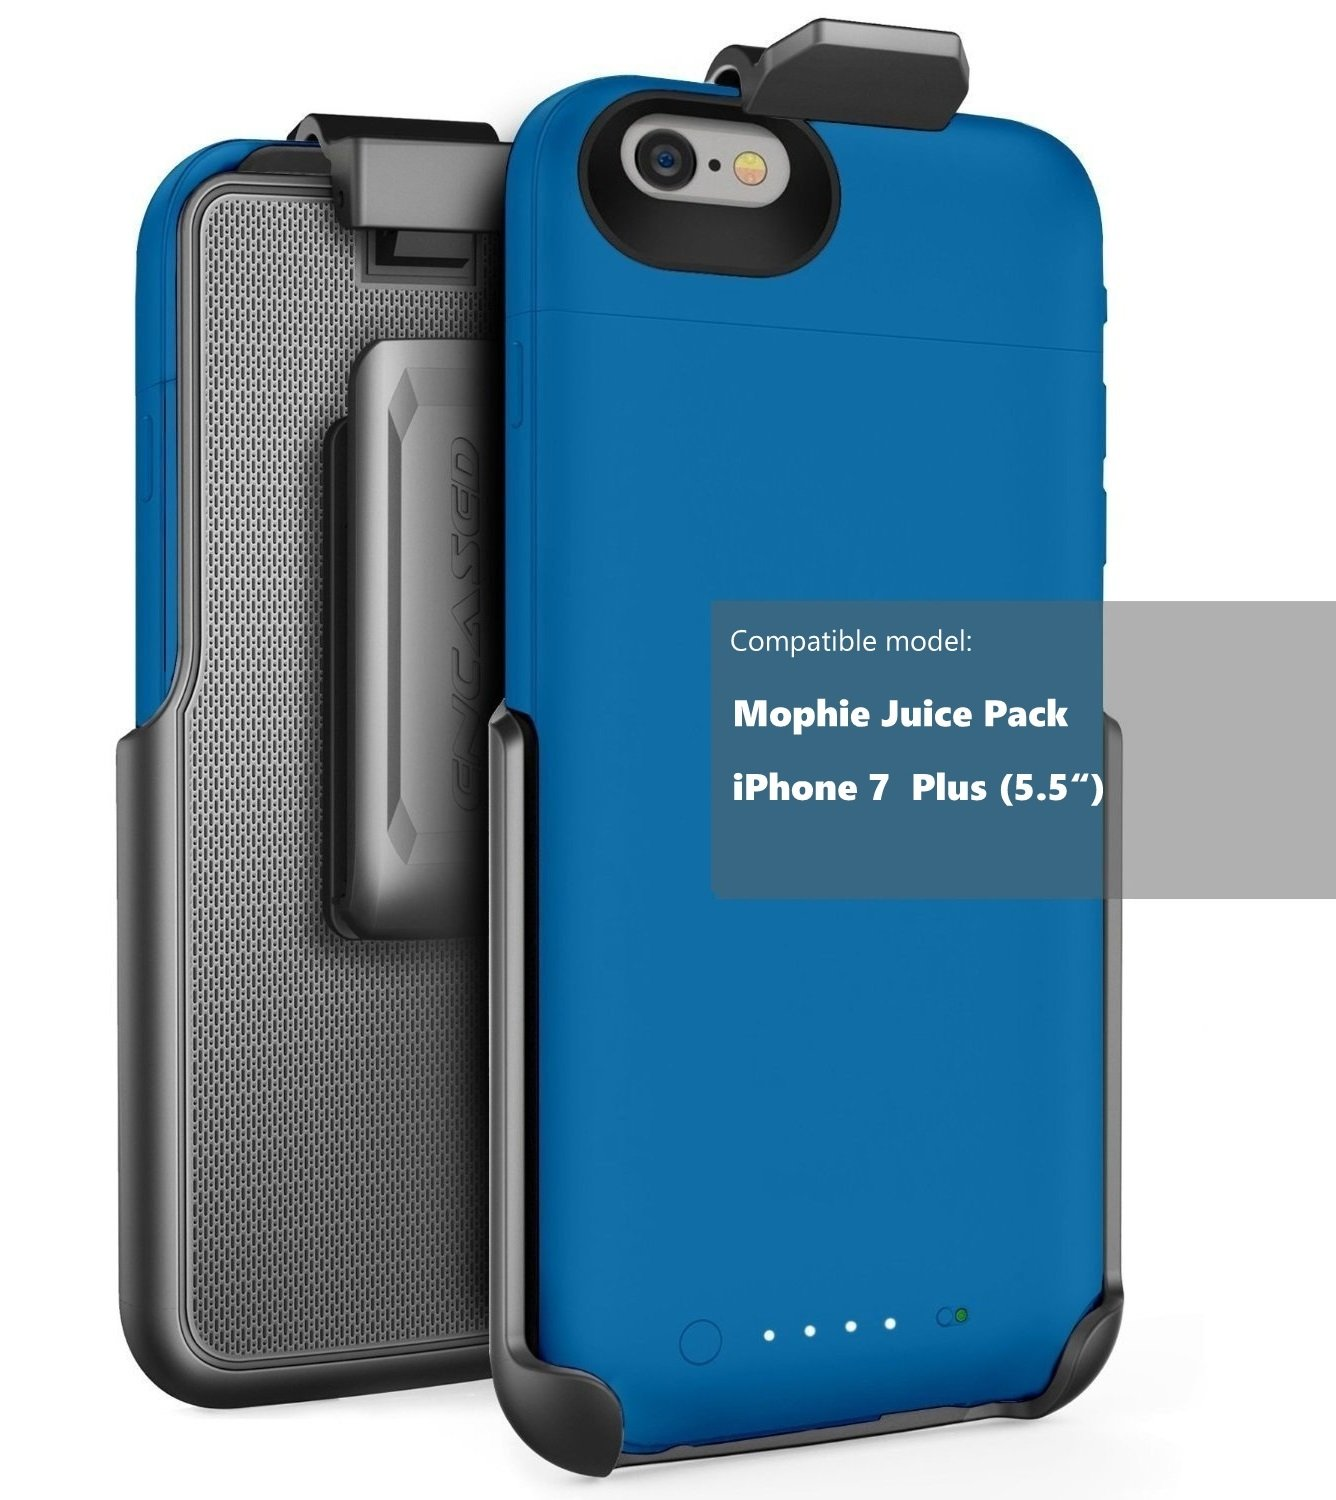 """Encased Belt Clip Holster fits Mophie air and Mophie Plus Juice Pack Battery Case - iPhone 8 Plus/iPhone 7 Plus (5.5"""") (case Sold Separately)"""